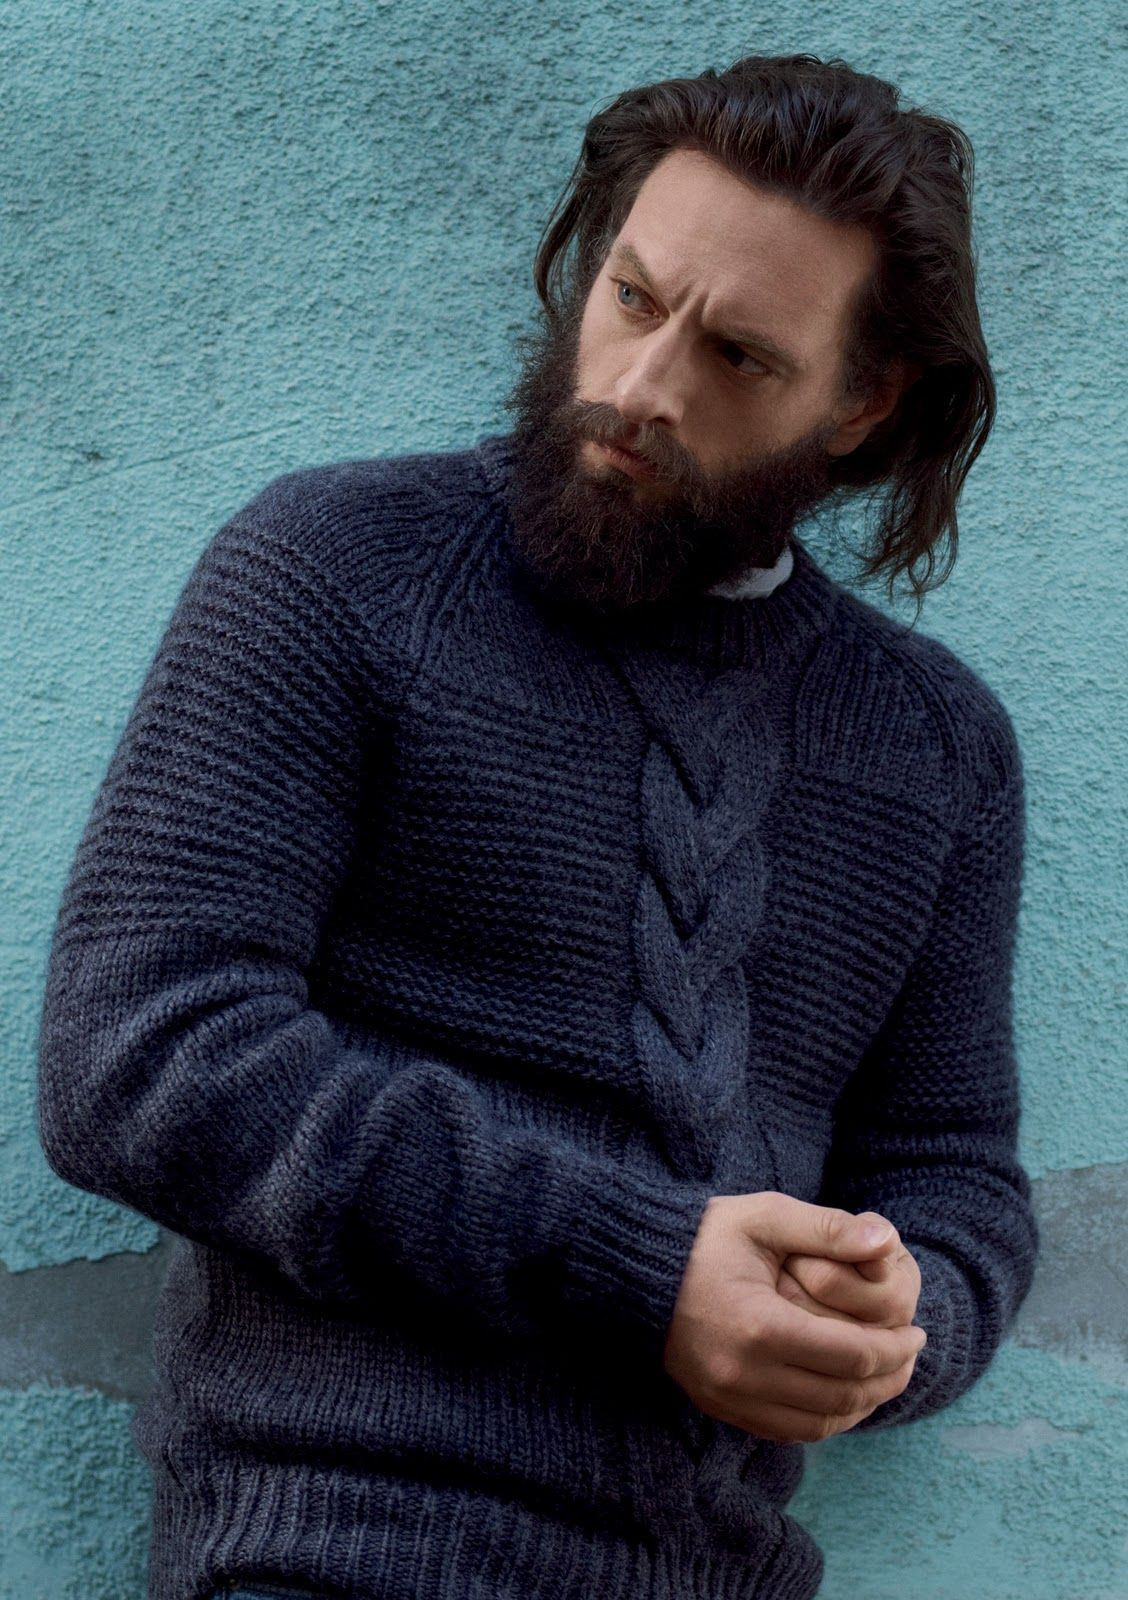 men's styling: The Chunky Hunky Knits- This time the Cable Guys